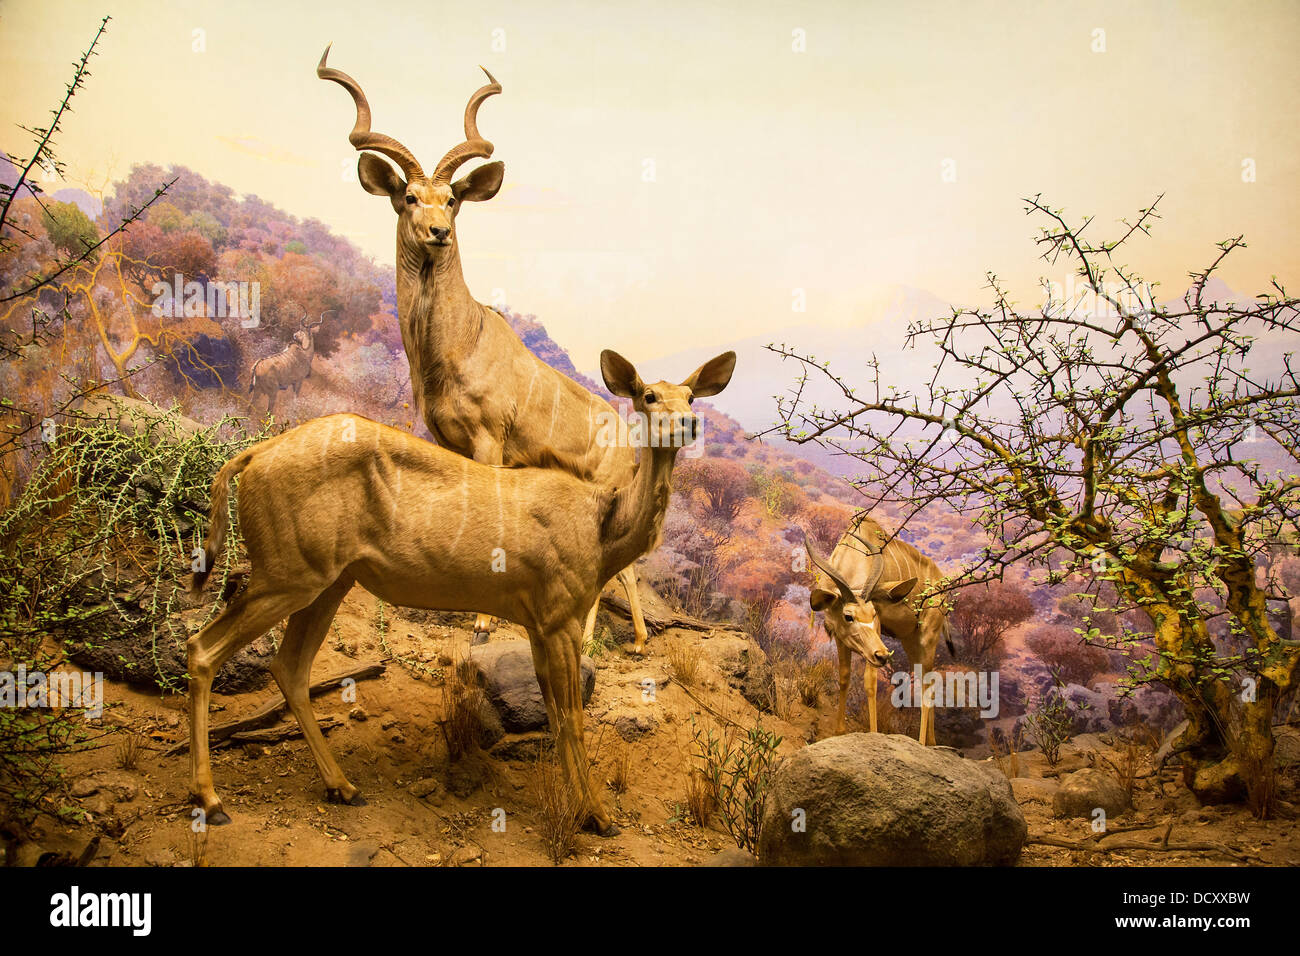 New York, Museum Of Natural History - Stock Image